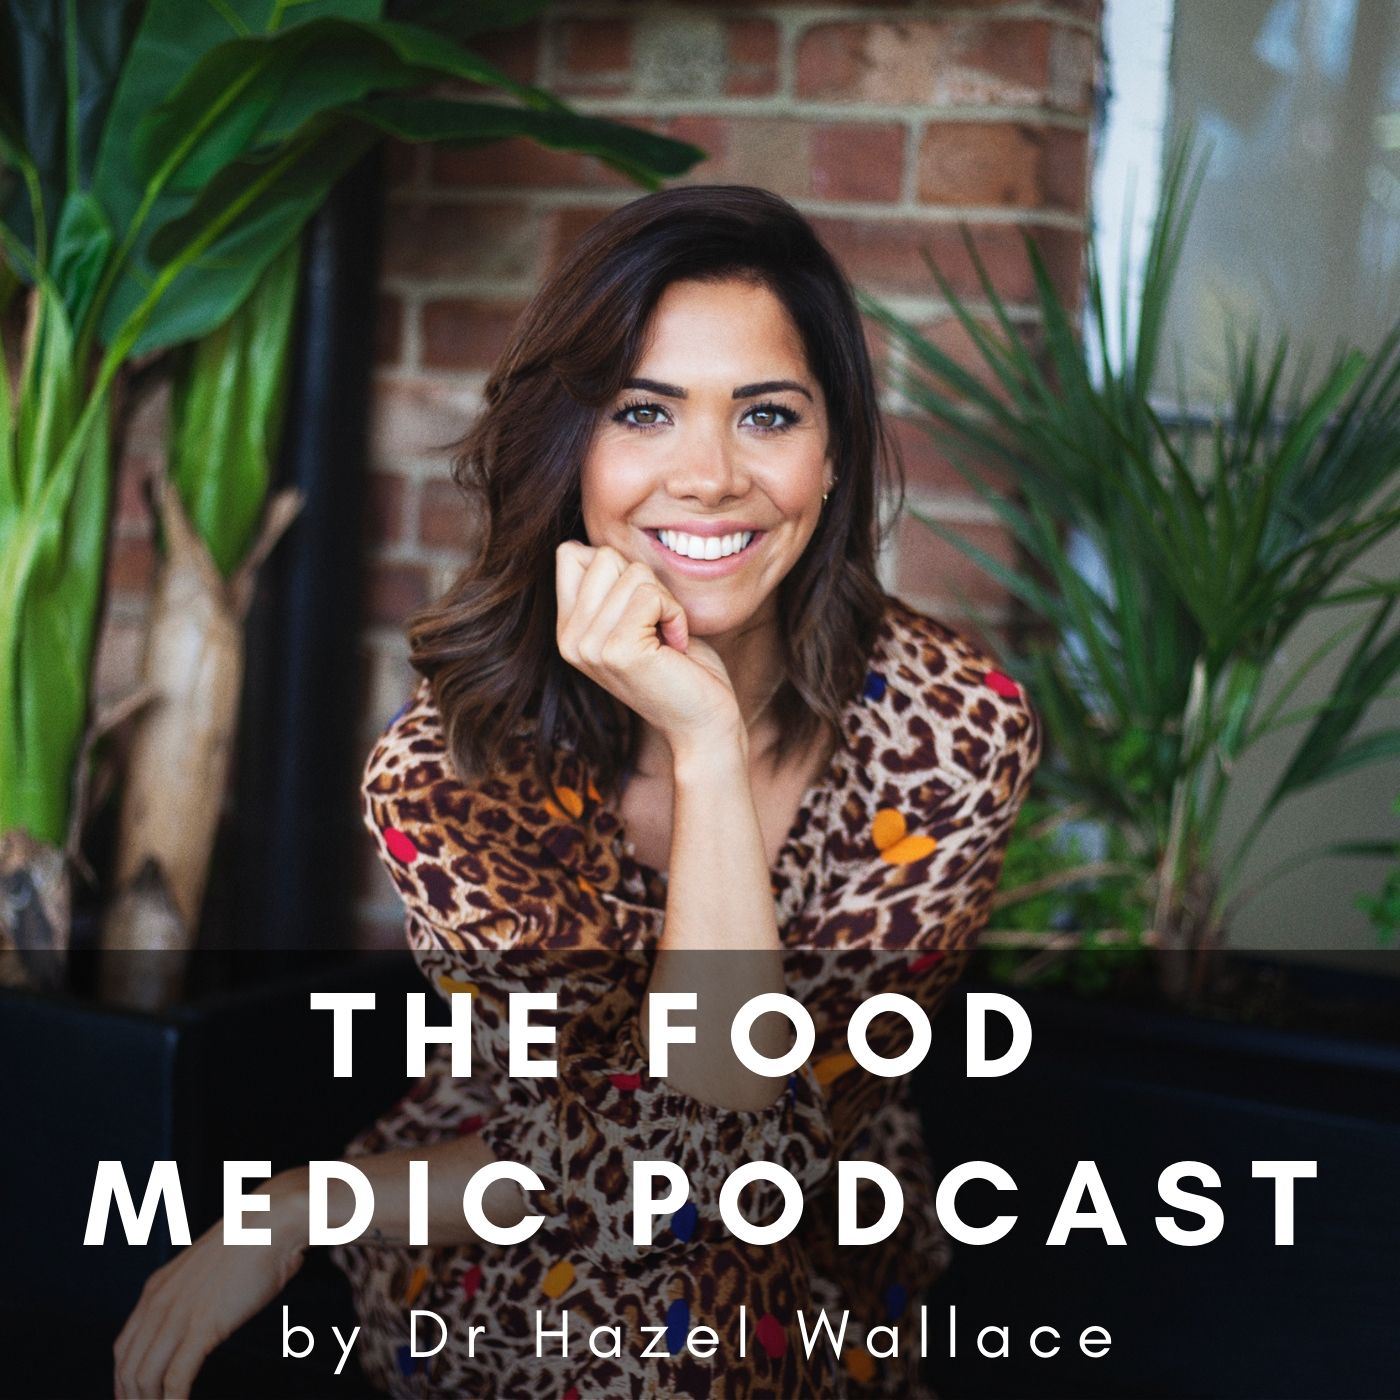 S2 E2 - Bonus episode from The Future of Food Conference